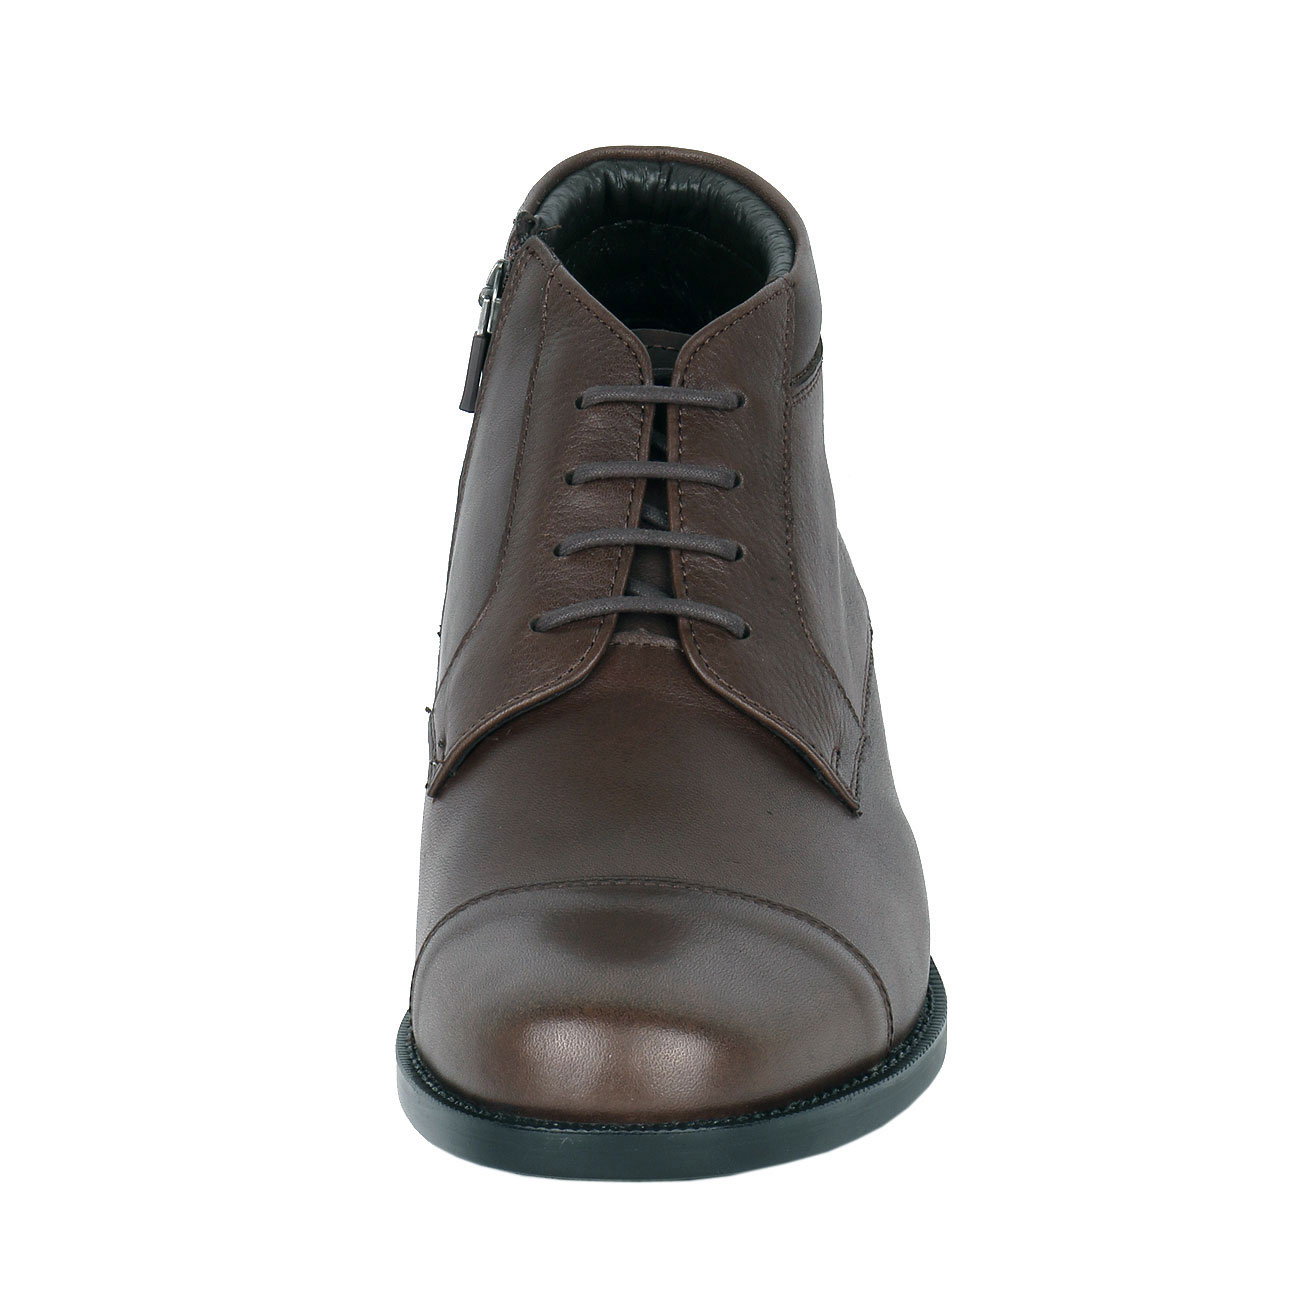 Men's Leather Chukka Semi Dress Boot to Height Enhancing